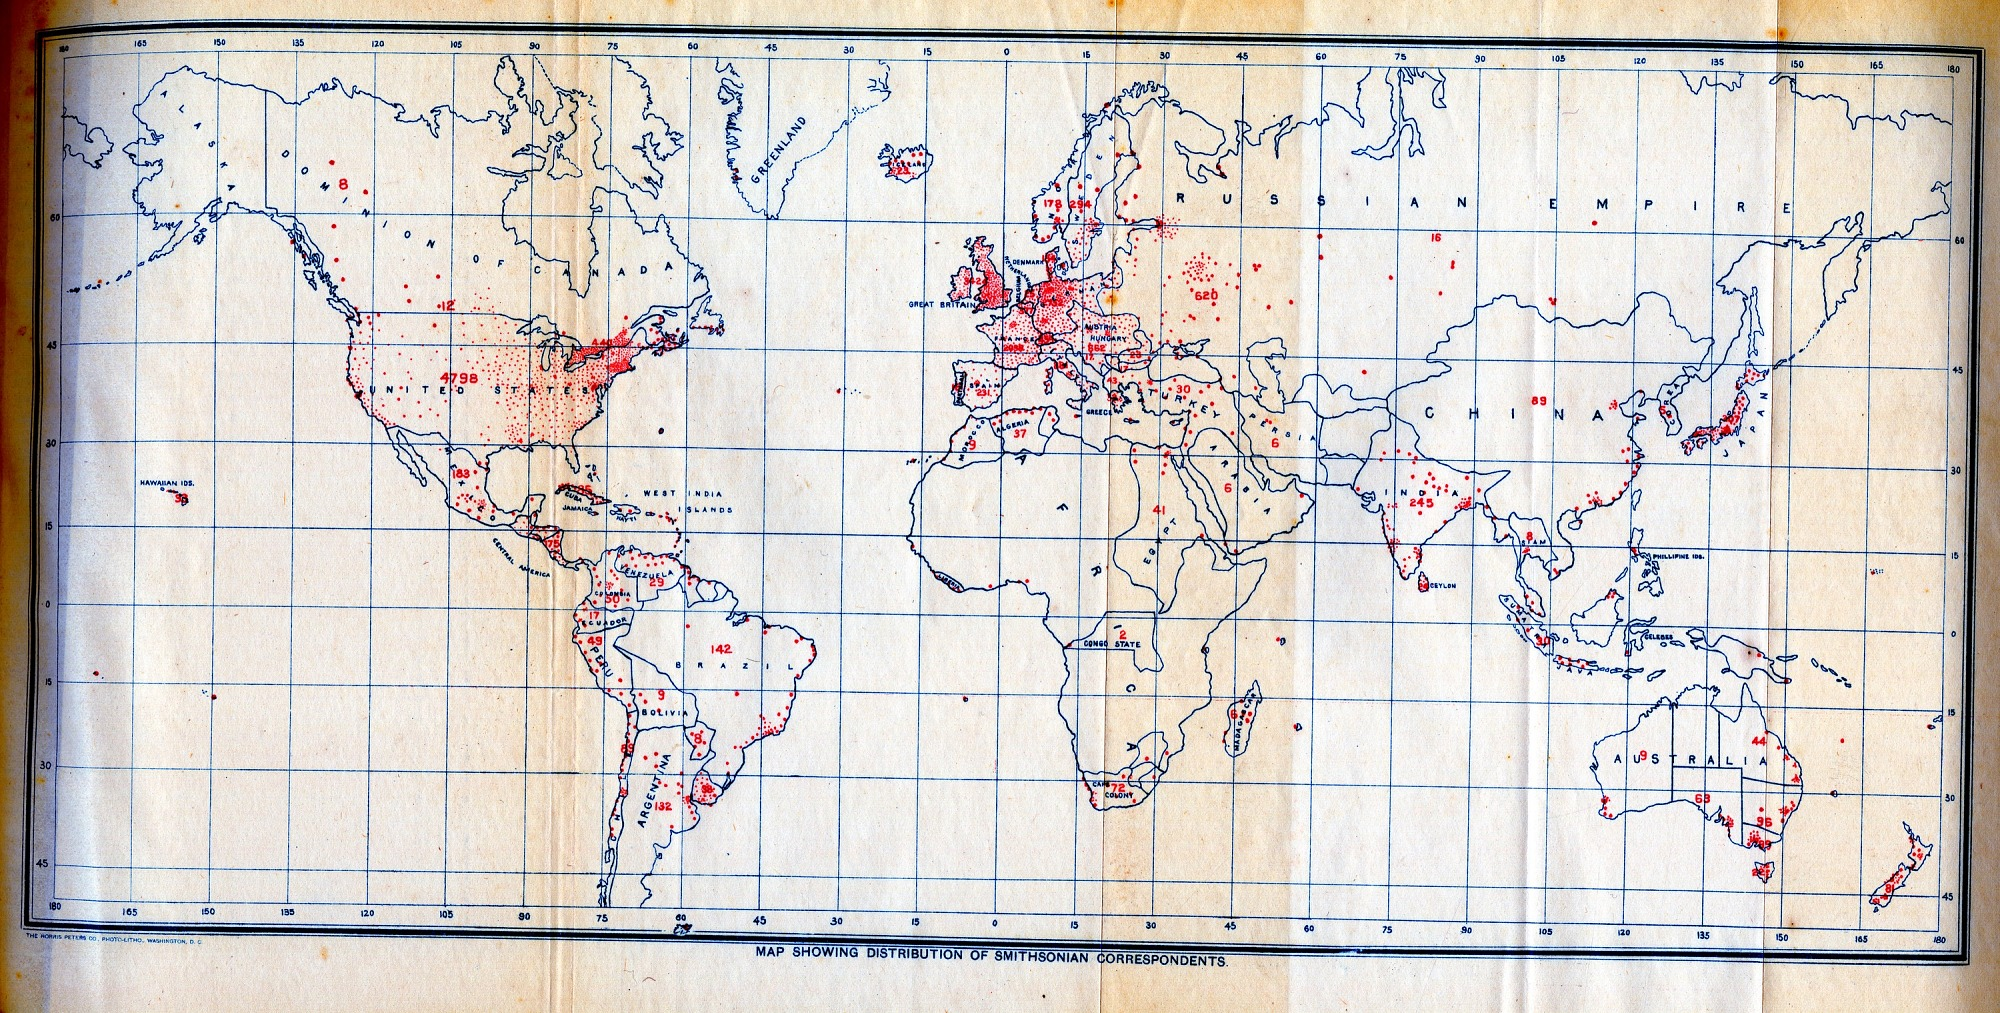 Map Showing Distribution of Smithsonian Correspondents